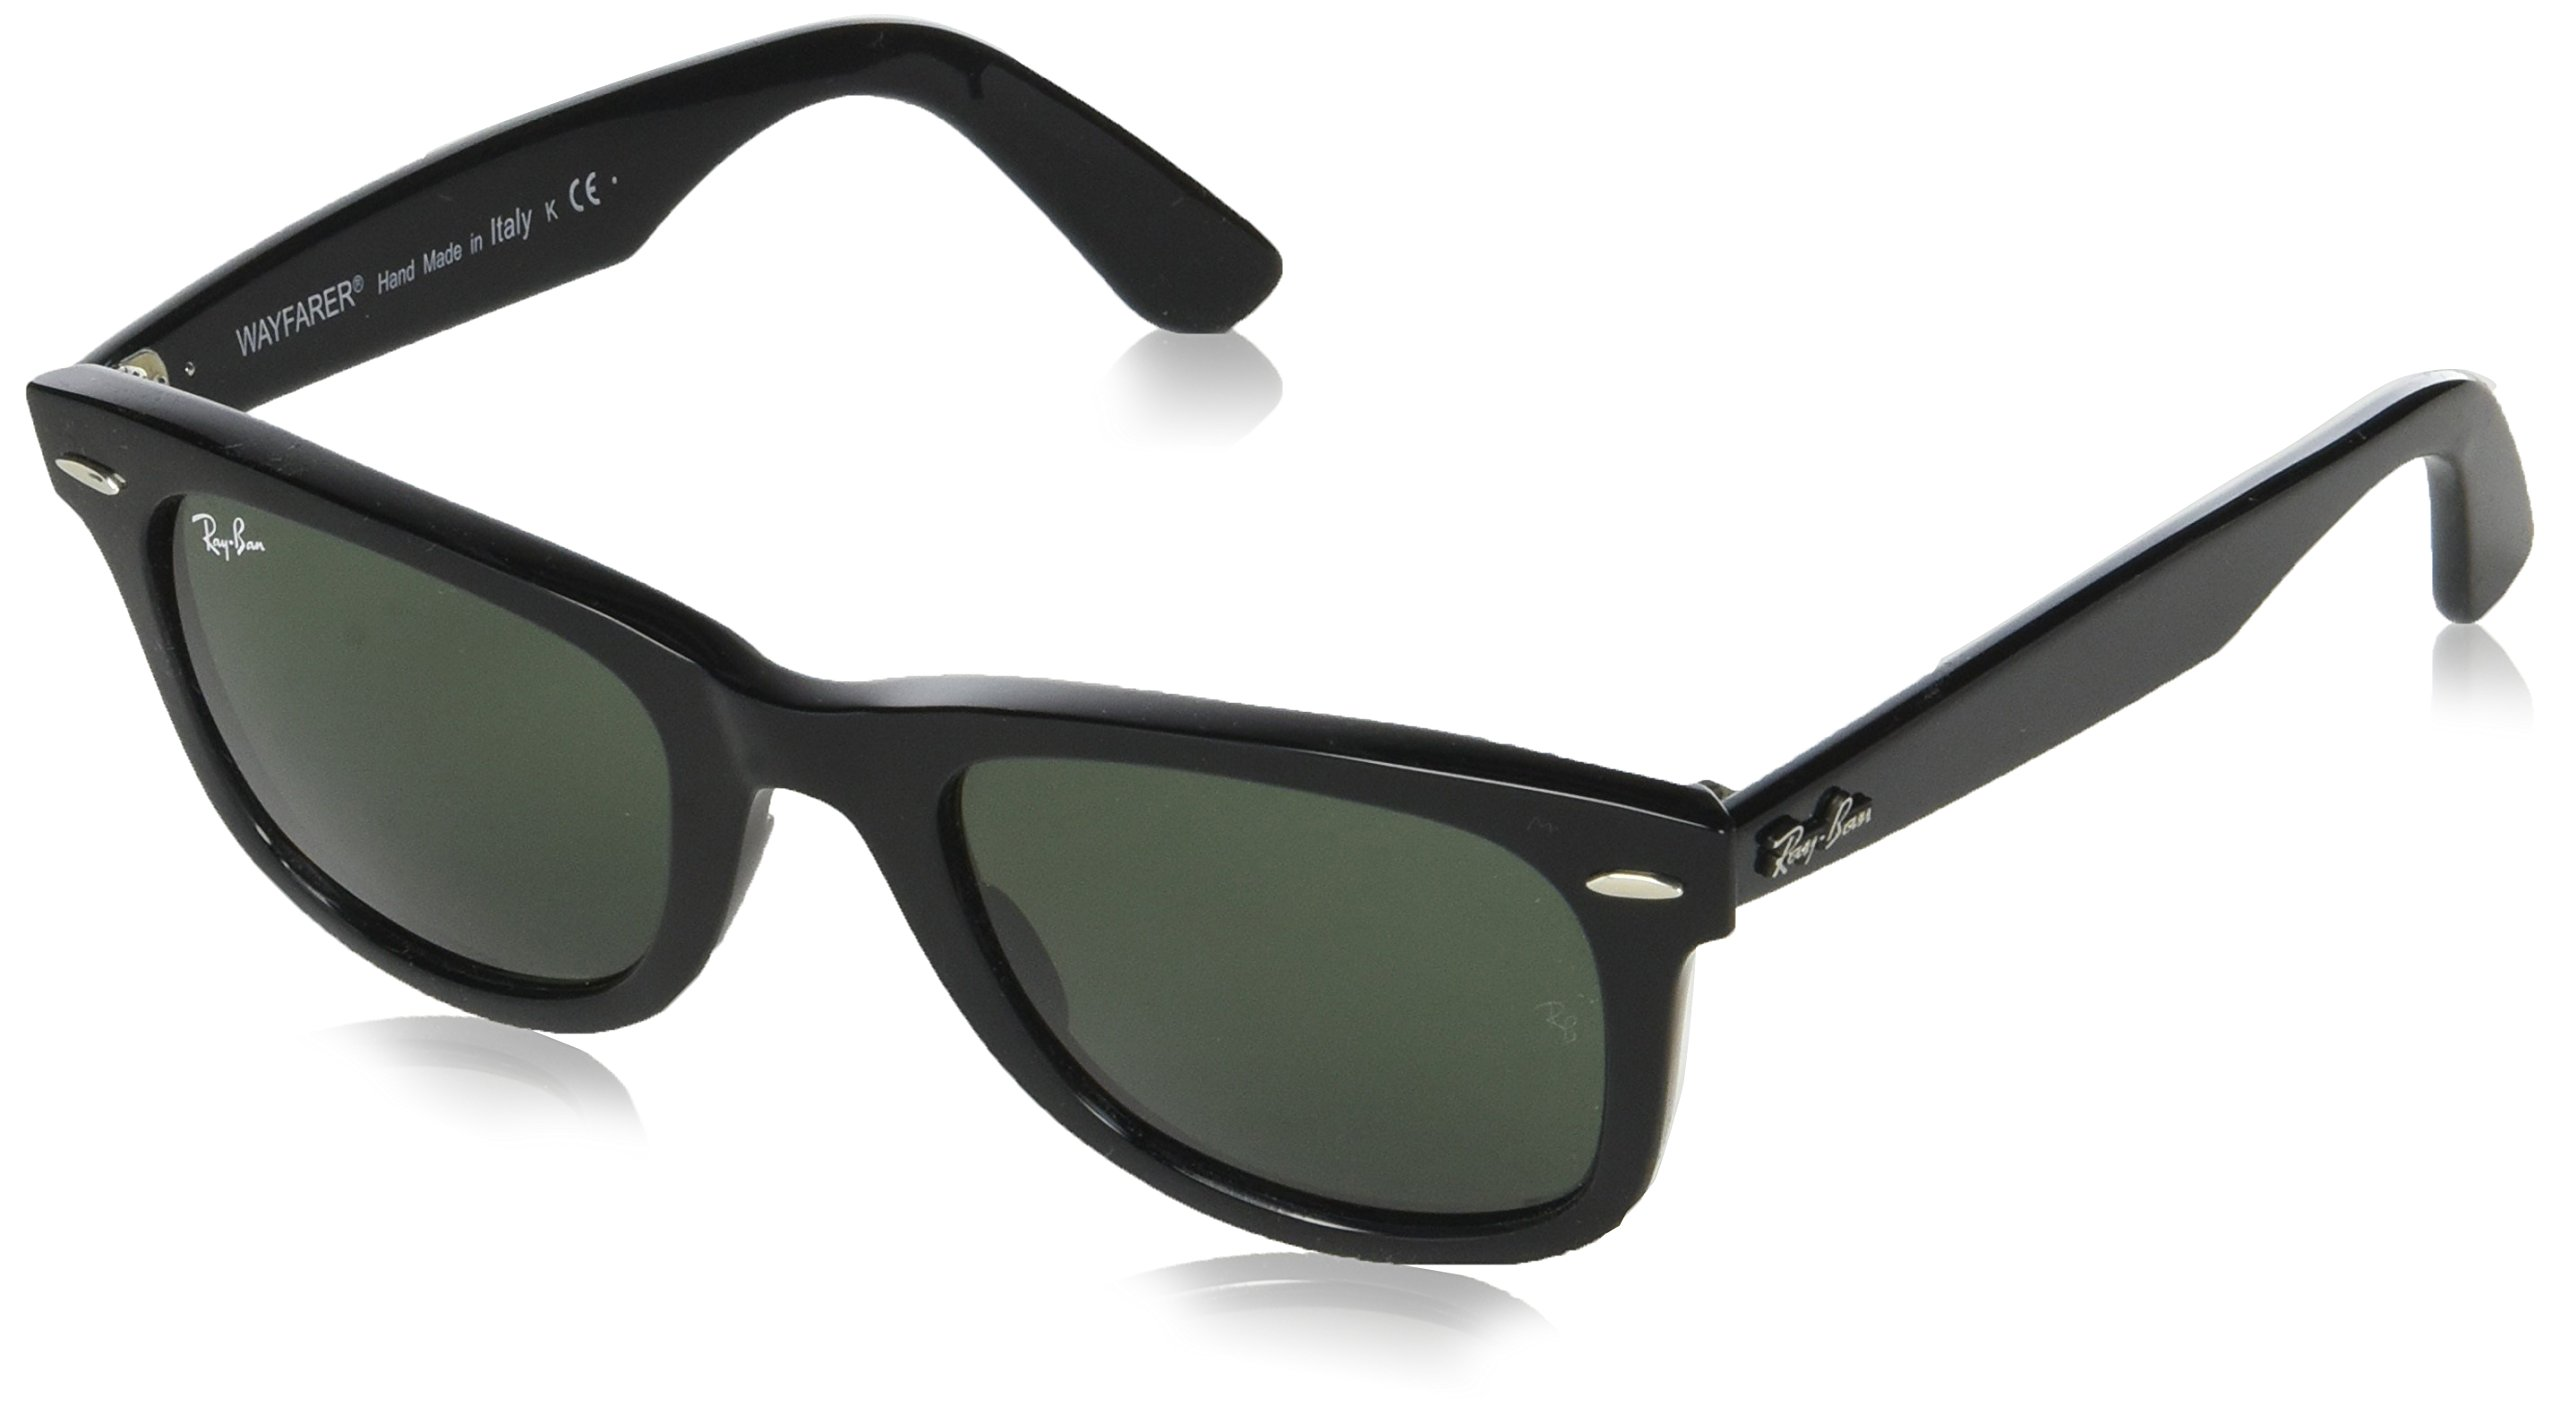 9f0f4fc465 Amazon.com: Ray-Ban